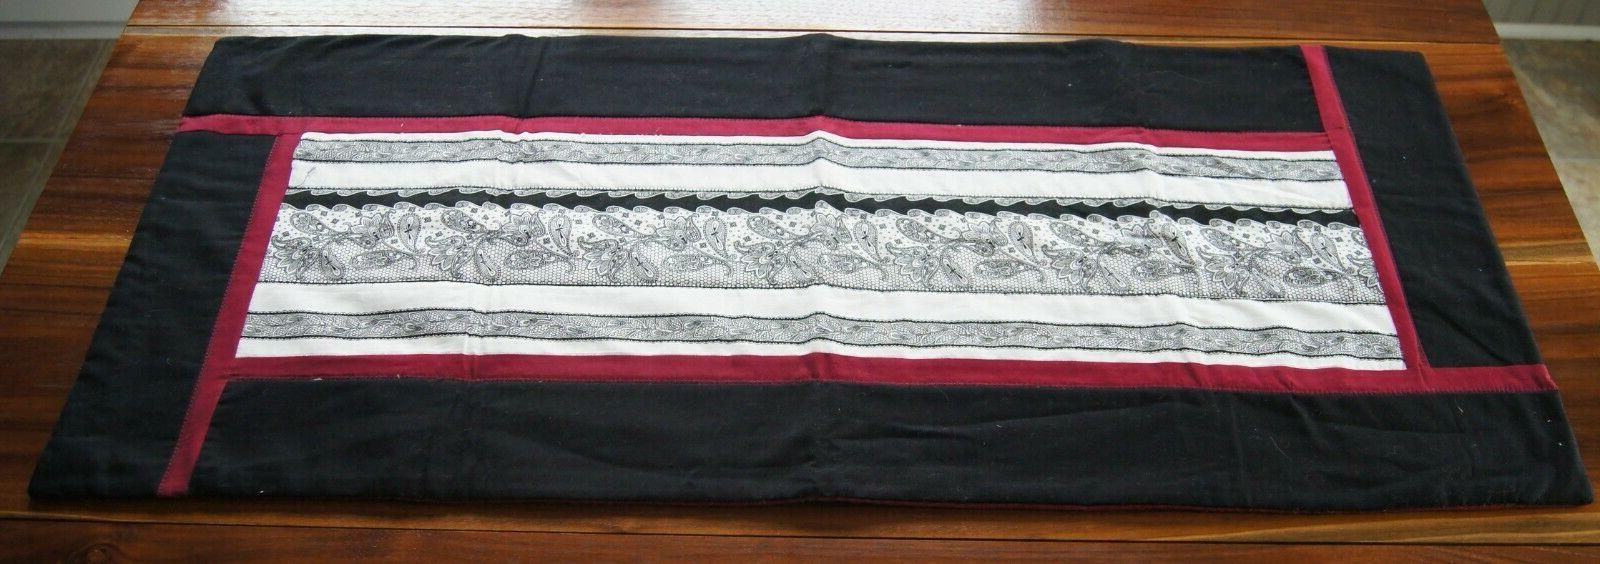 new handcrafted black white maroon decorative table